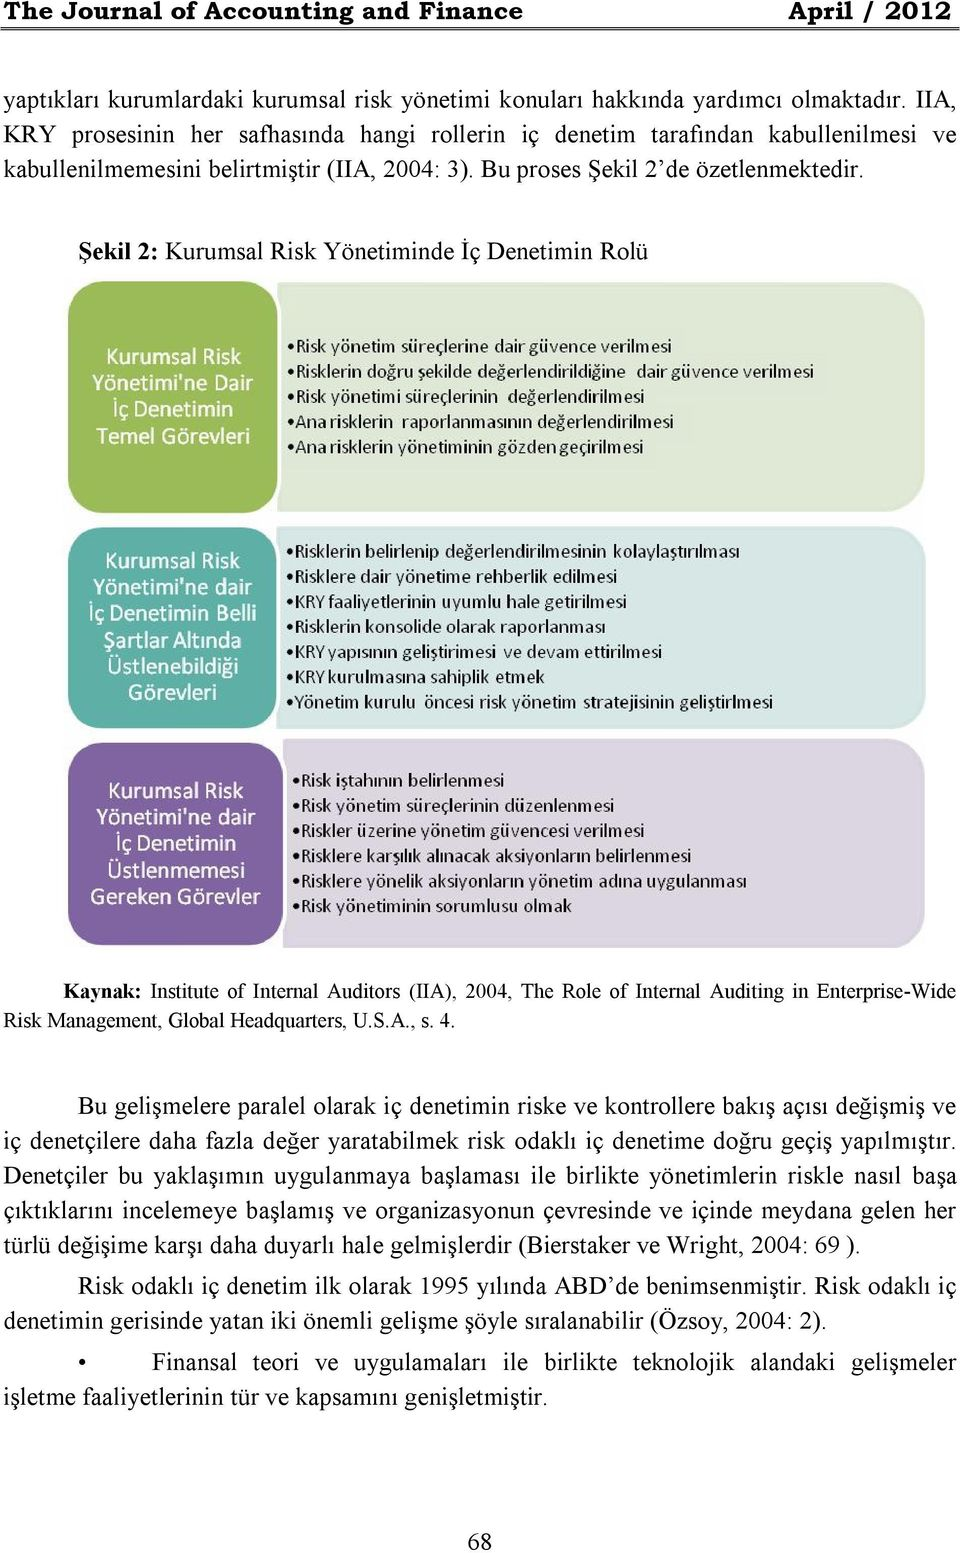 Şekil 2: Kurumsal Risk Yönetiminde İç Denetimin Rolü Kaynak: Institute of Internal Auditors (IIA), 2004, The Role of Internal Auditing in Enterprise-Wide Risk Management, Global eadquarters, U.S.A., s.